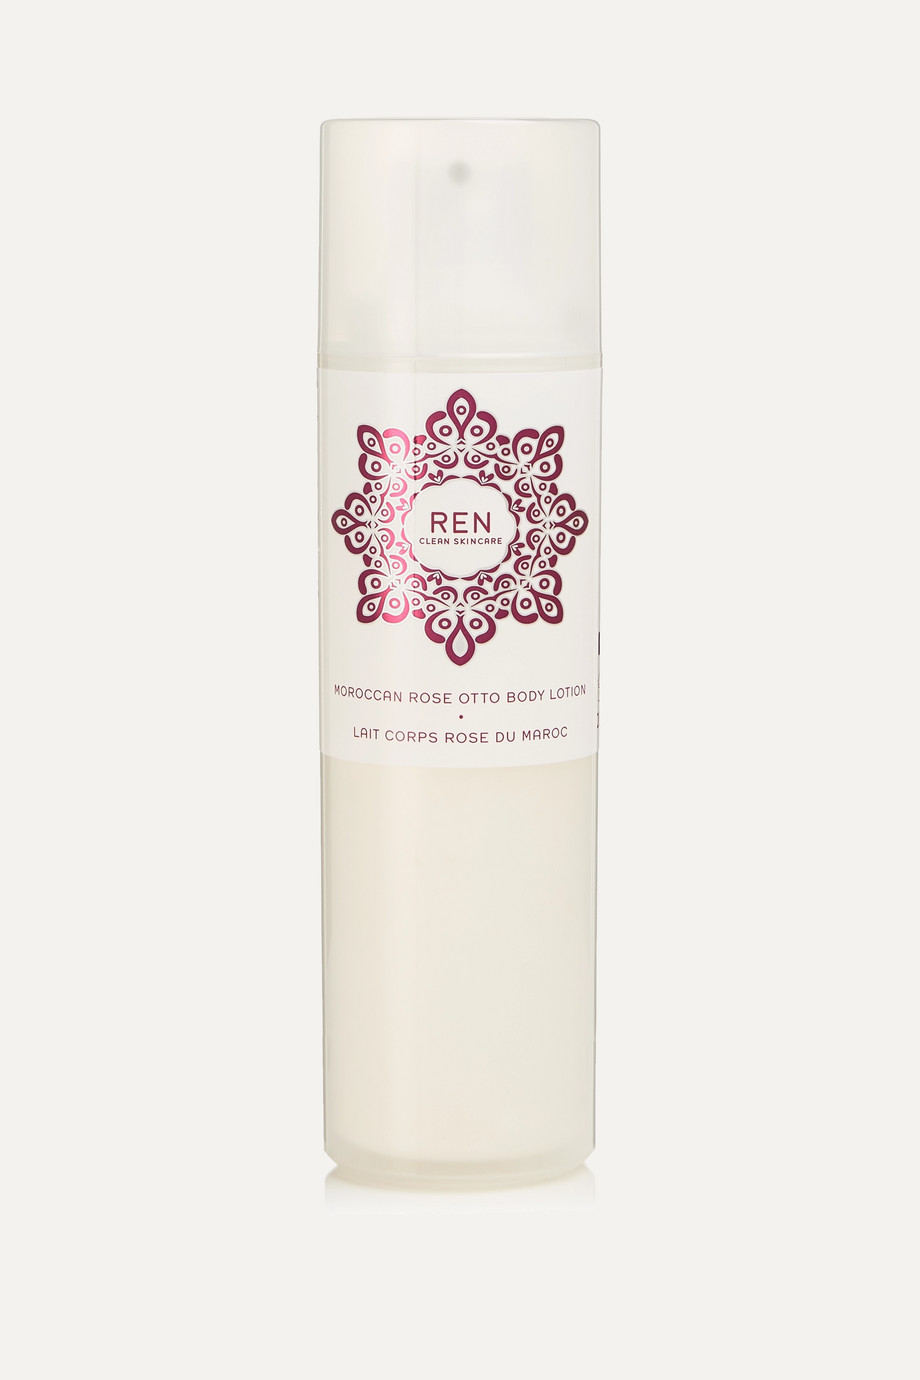 REN Clean Skincare Moroccan Rose Otto Body Lotion, 200ml